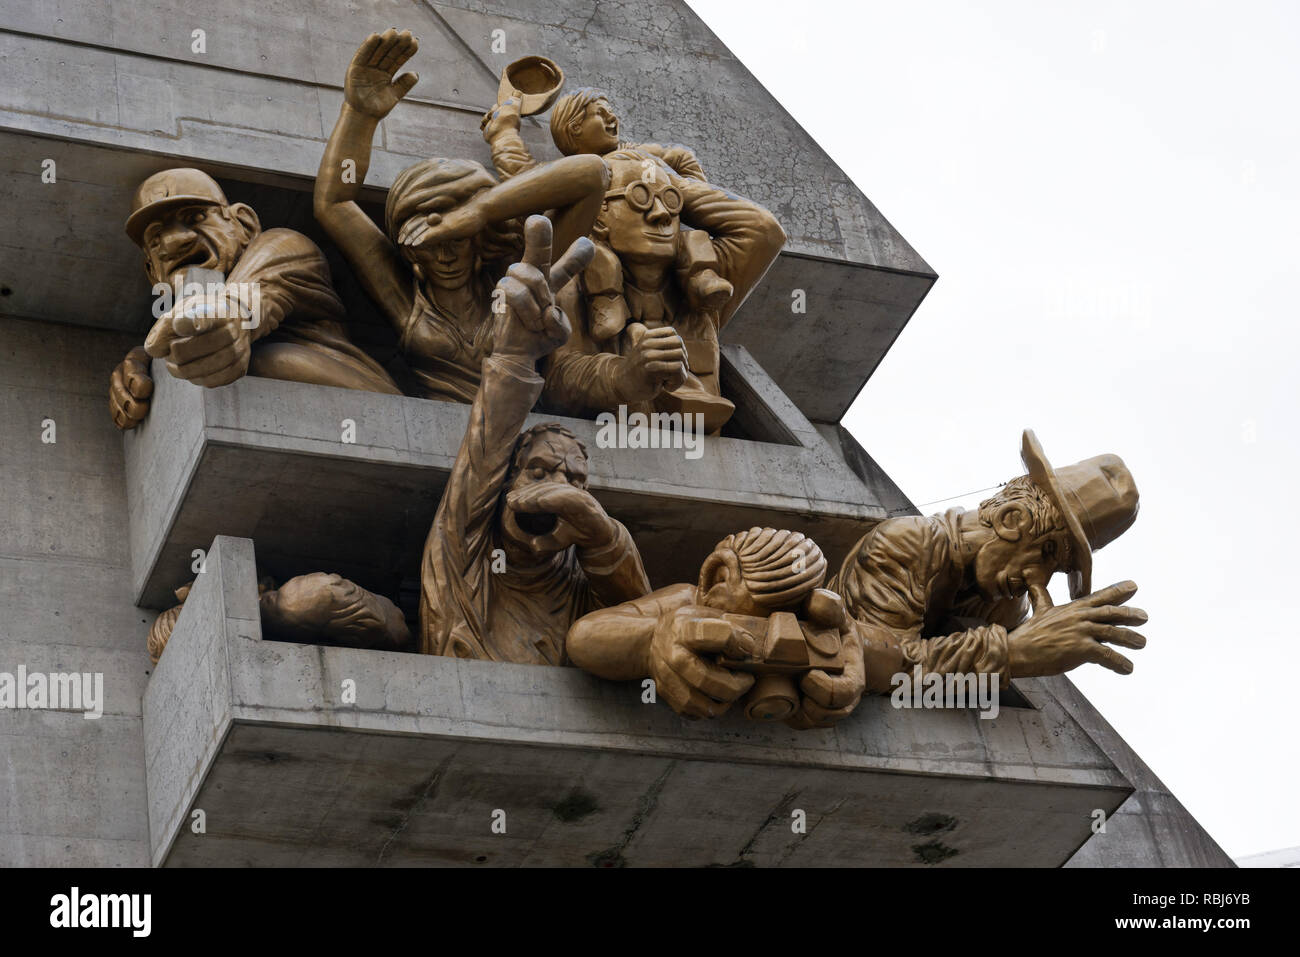 The Michael Snow sculpture 'The Audience' on the outside of the Rogers Centre (ex the Skydome), home of The Blue Jays baseball team, Toronto - Stock Image